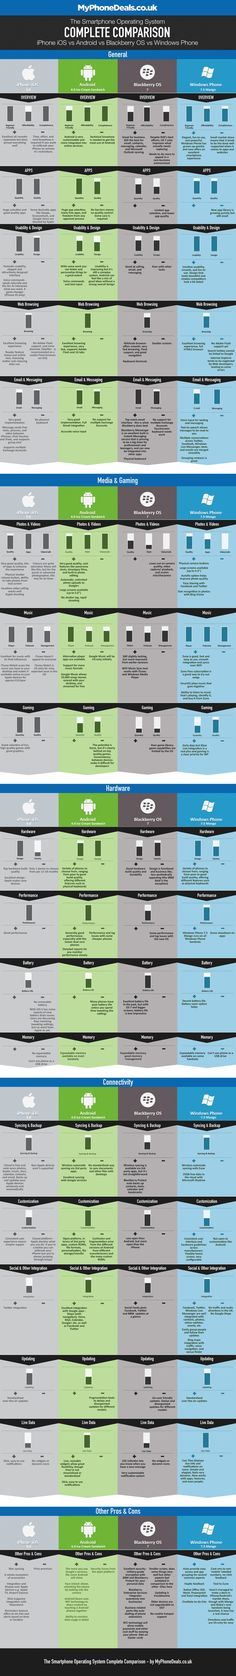 Android, iOS and Windows Phone compared in infographic   CNET UK